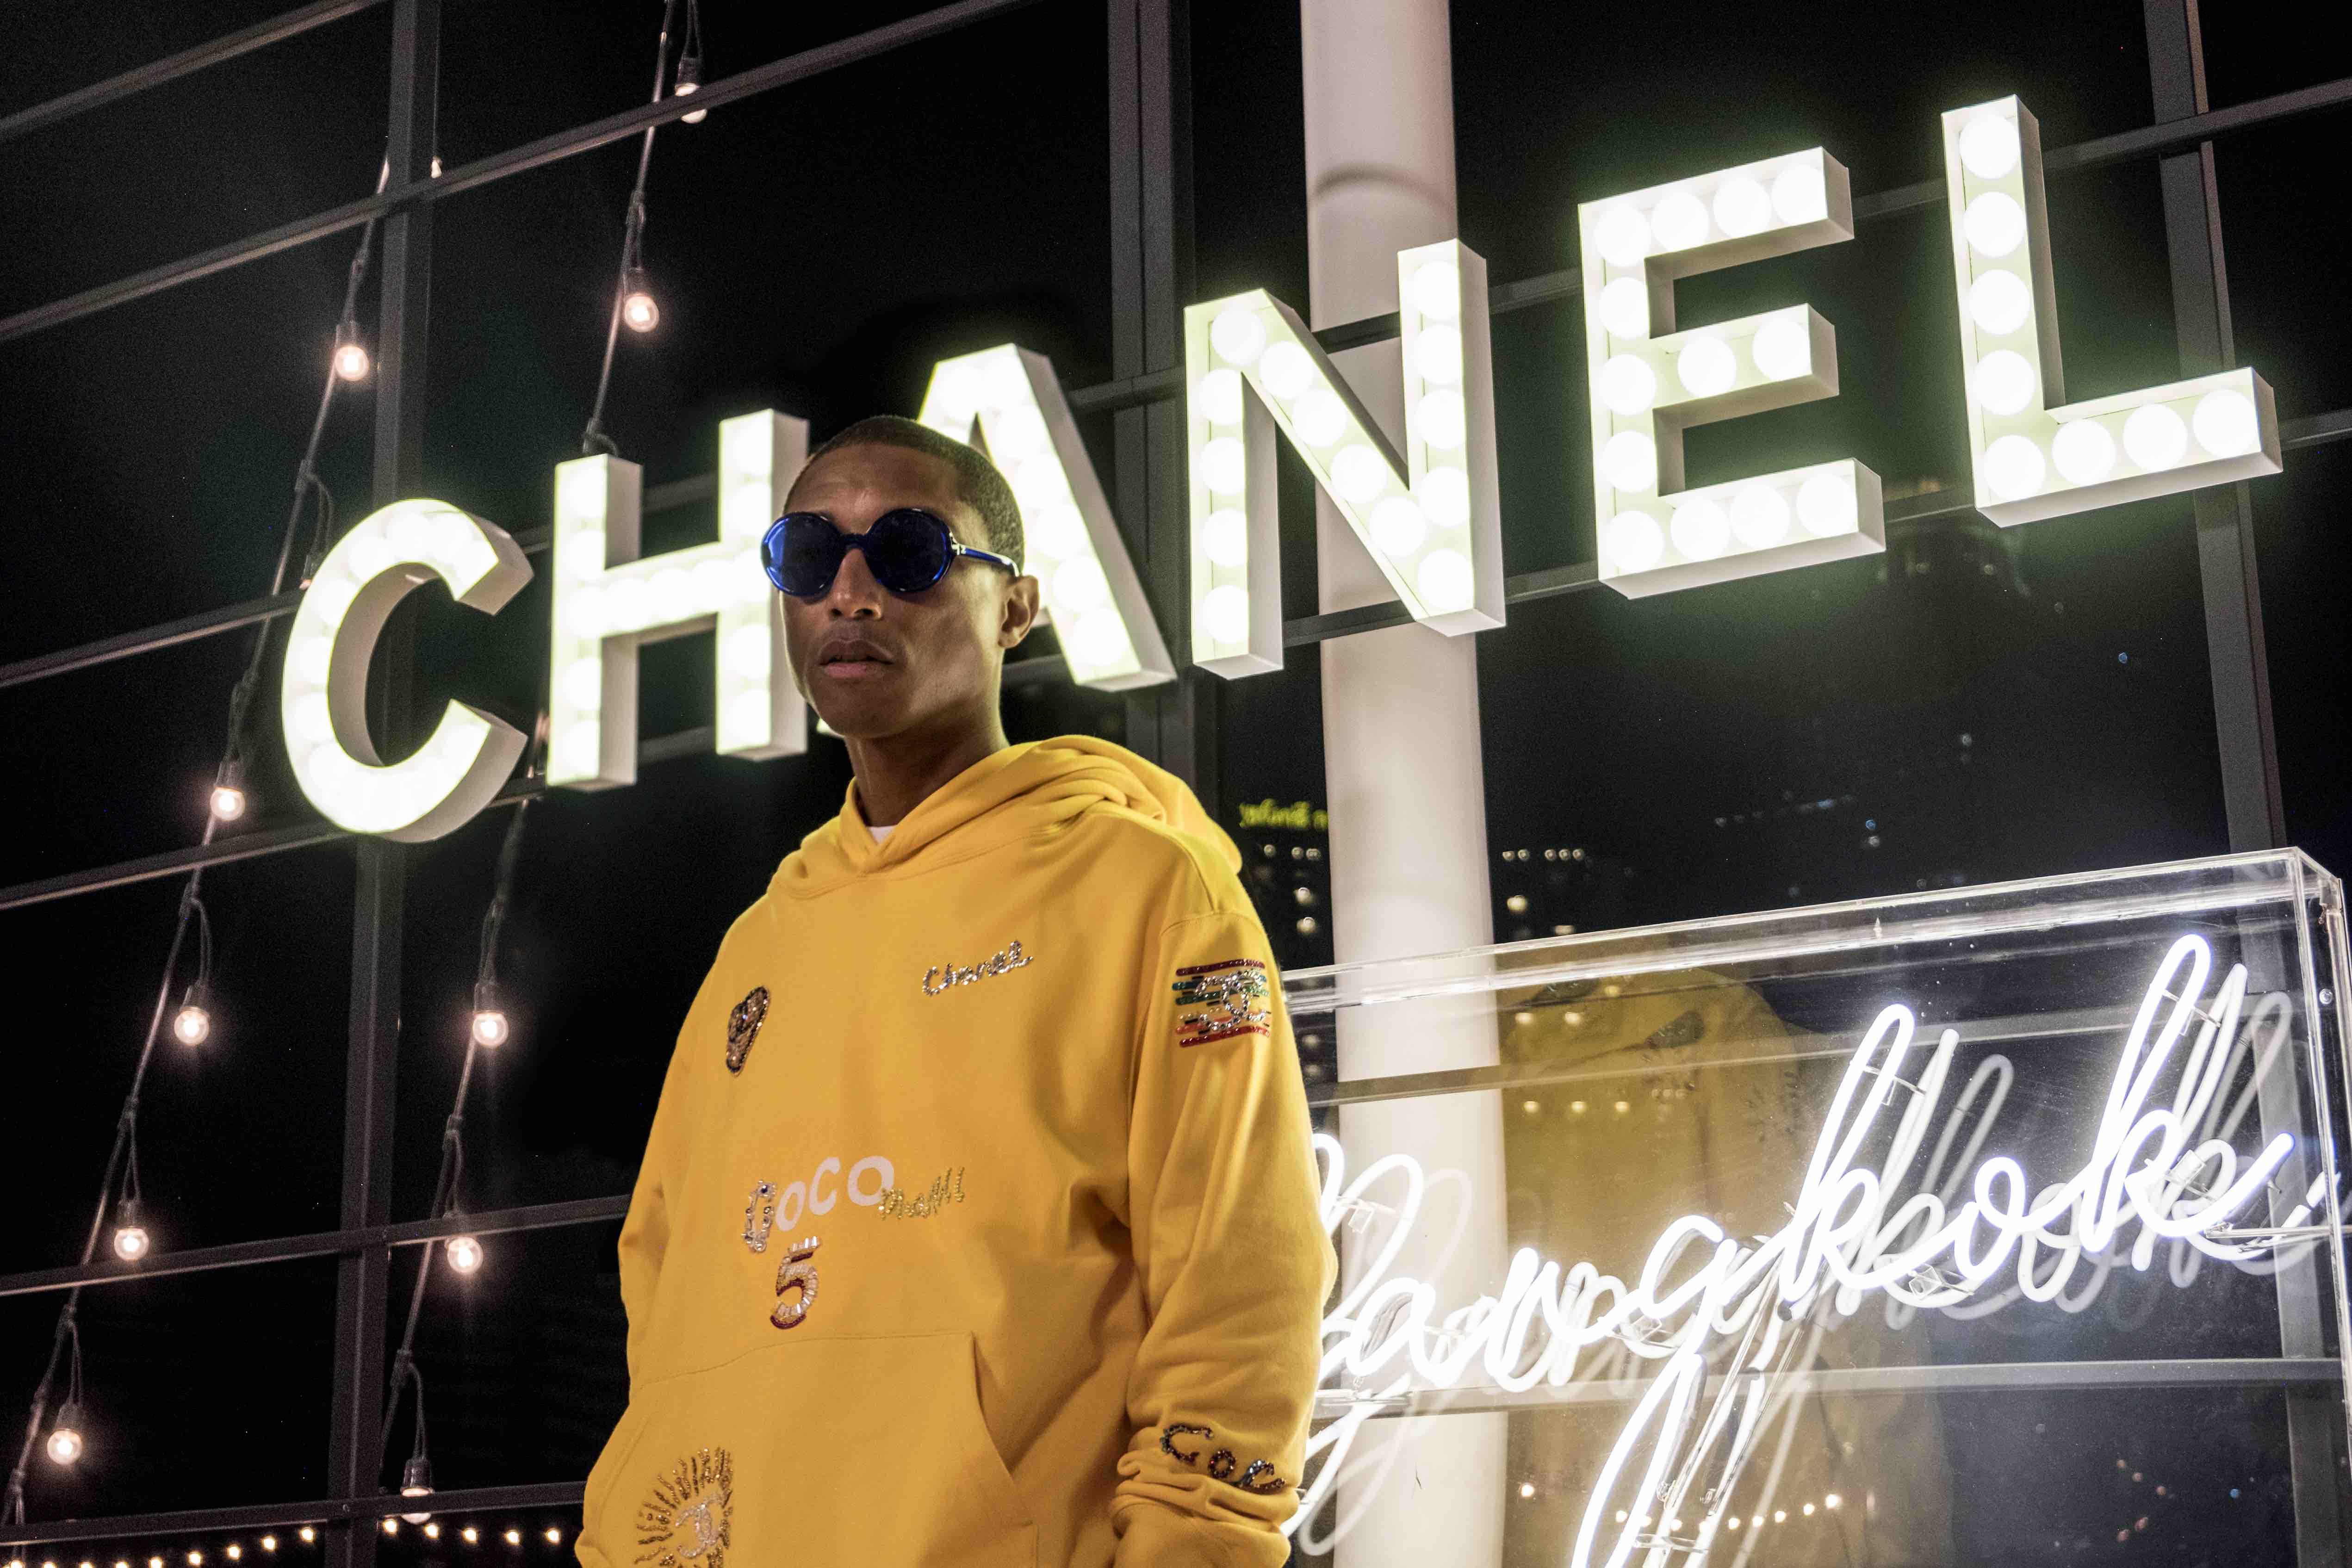 Chanel Pharrell collaboration capsule collection film